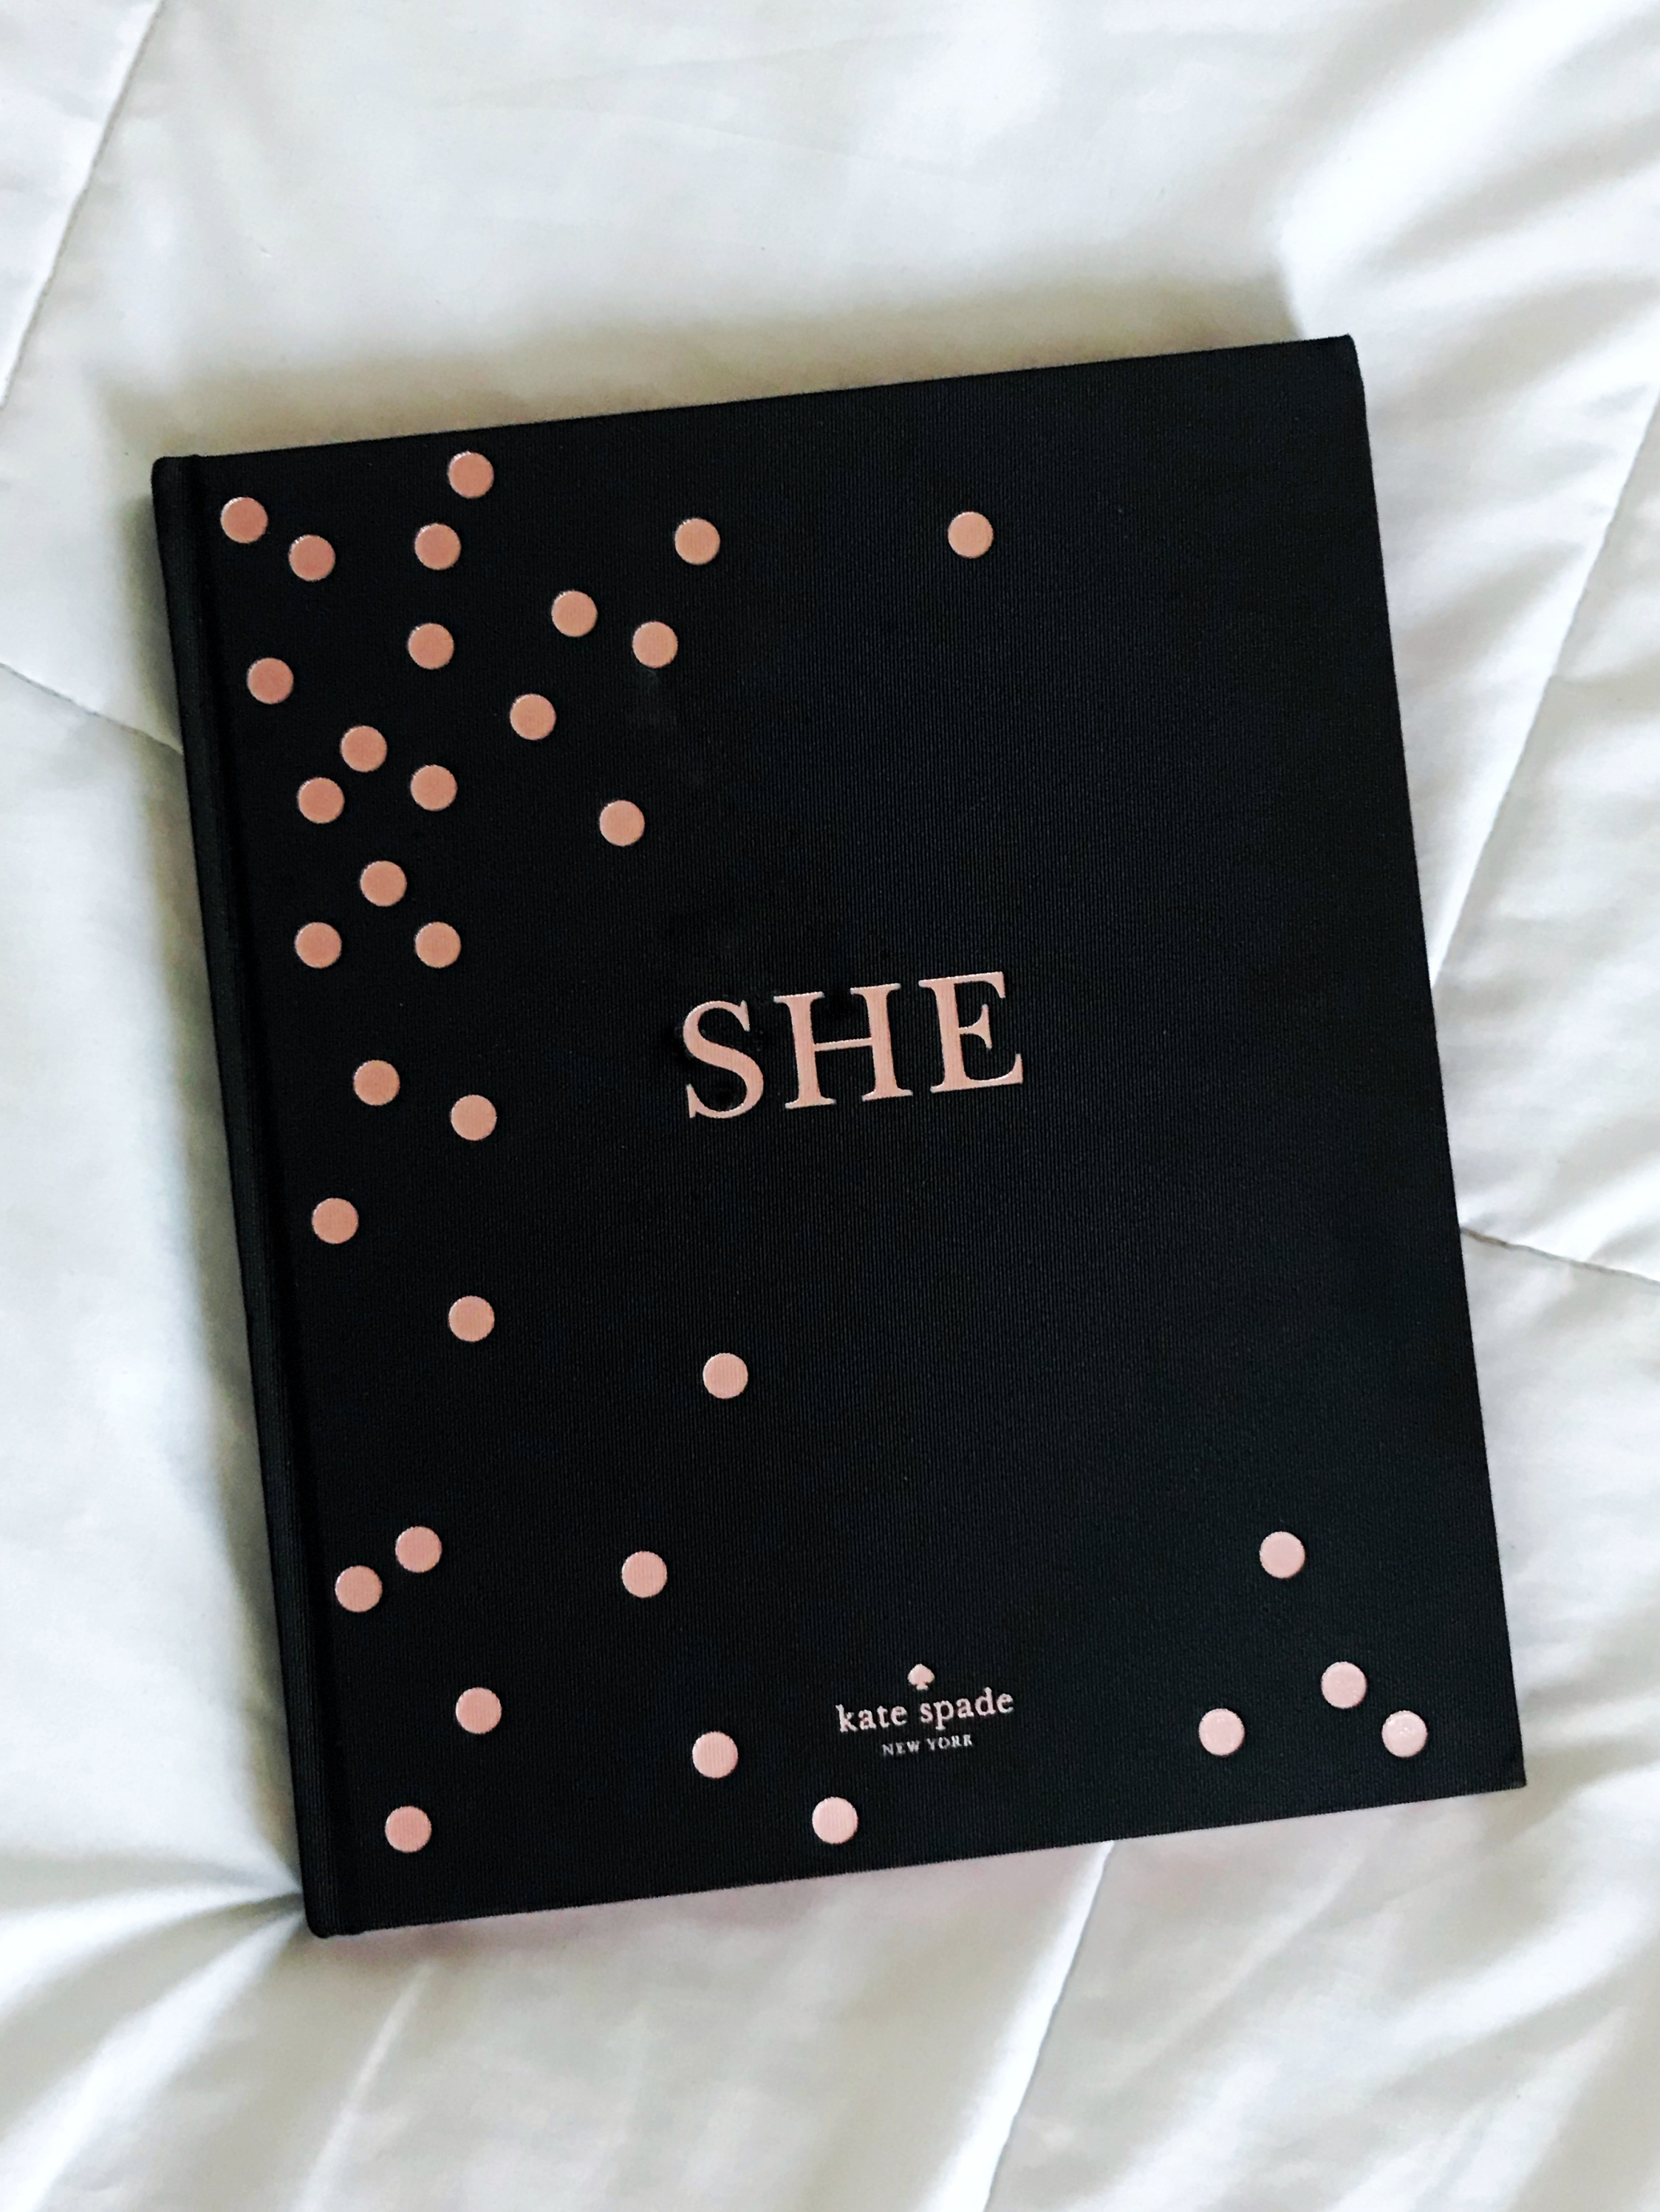 SHE by Kate Spade